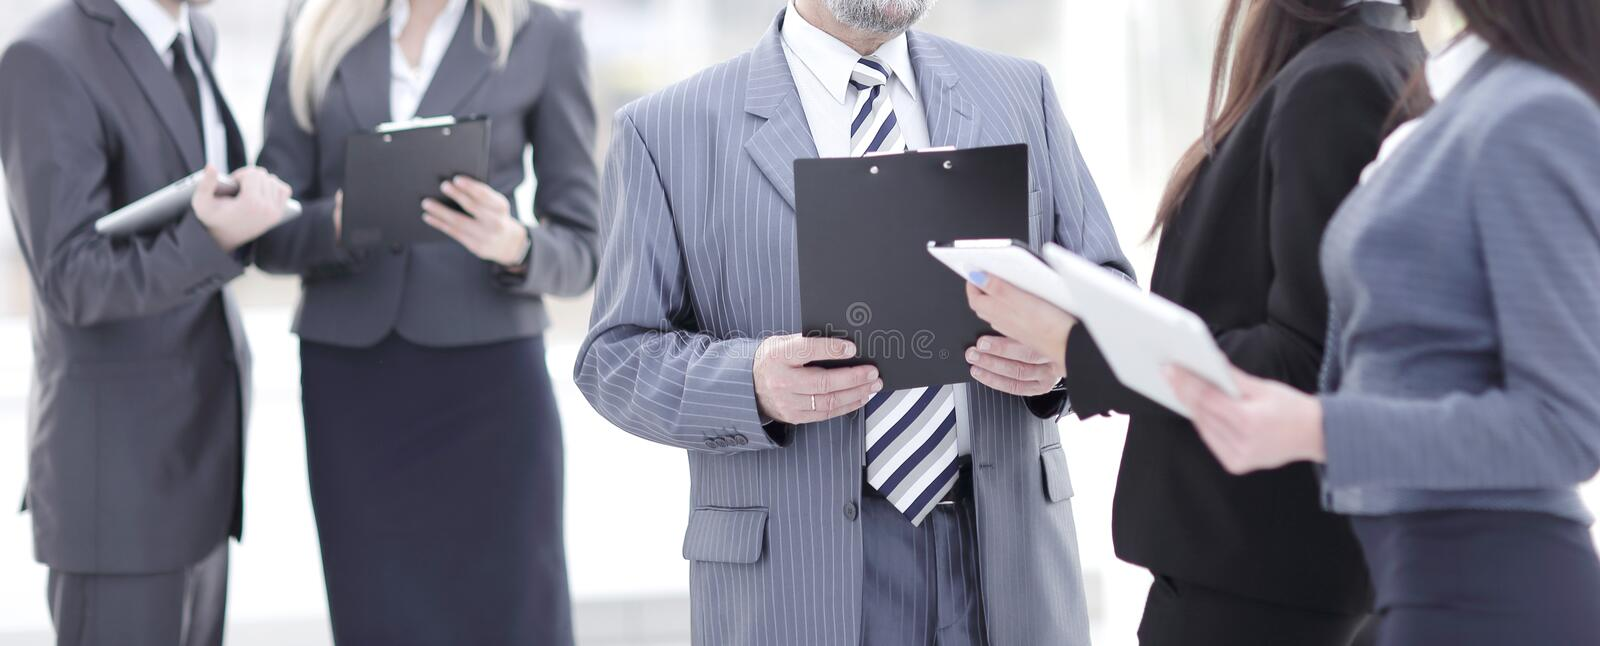 Close up.group of business people standing in lobby of office. royalty free stock image